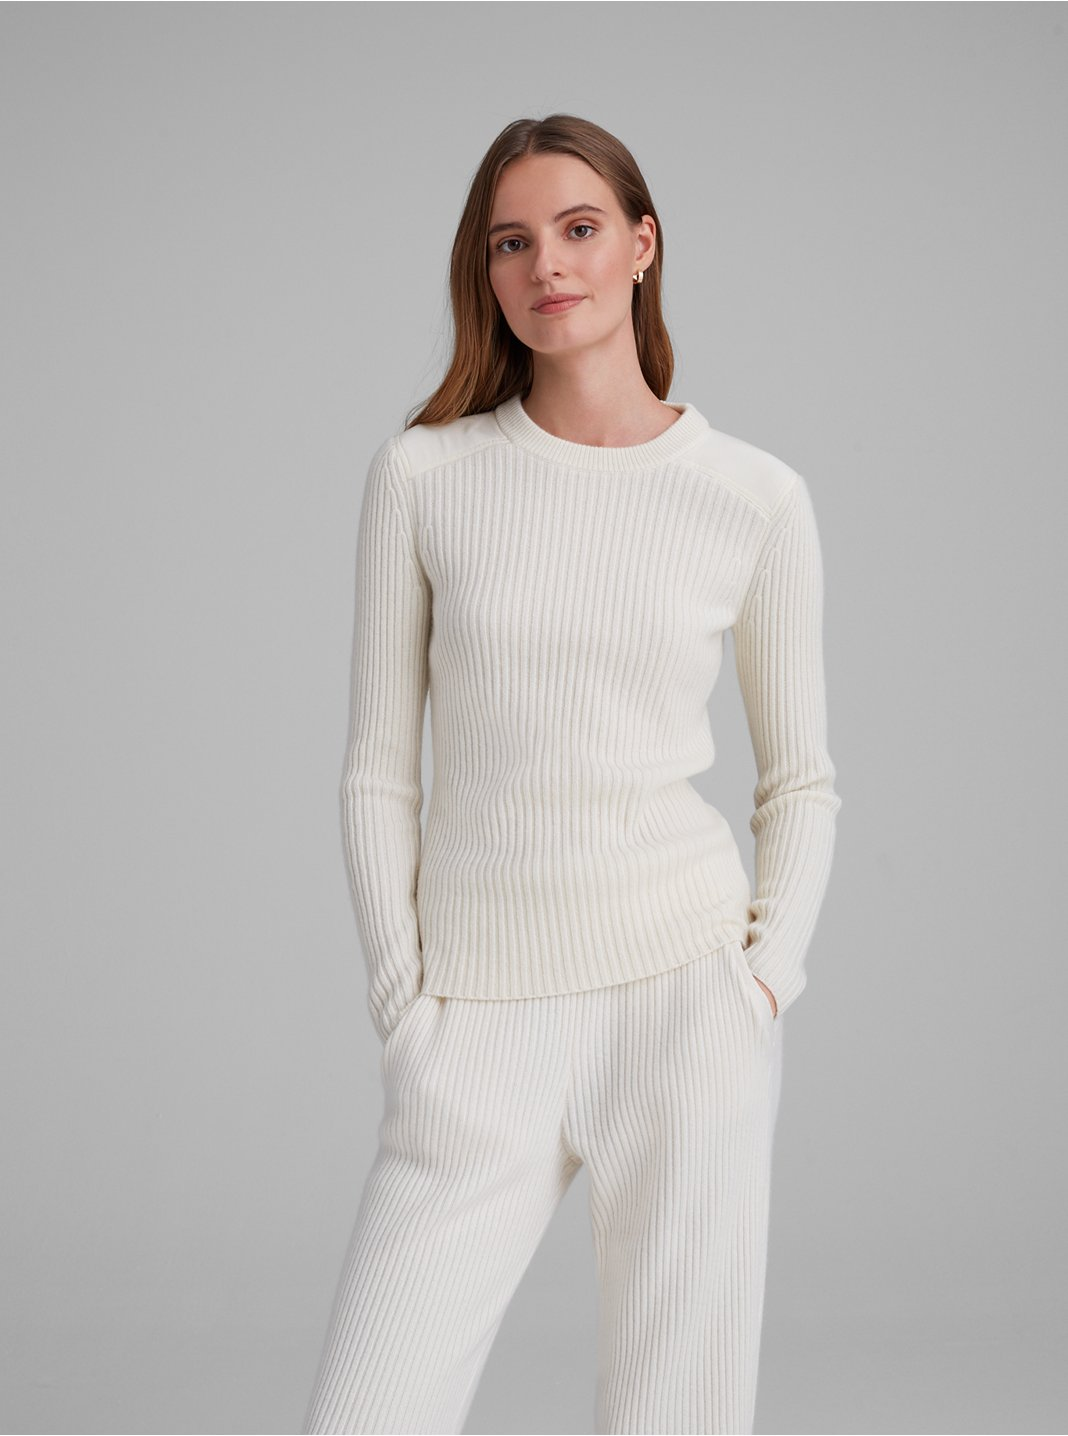 Woven Yolk Cashmere Sweater